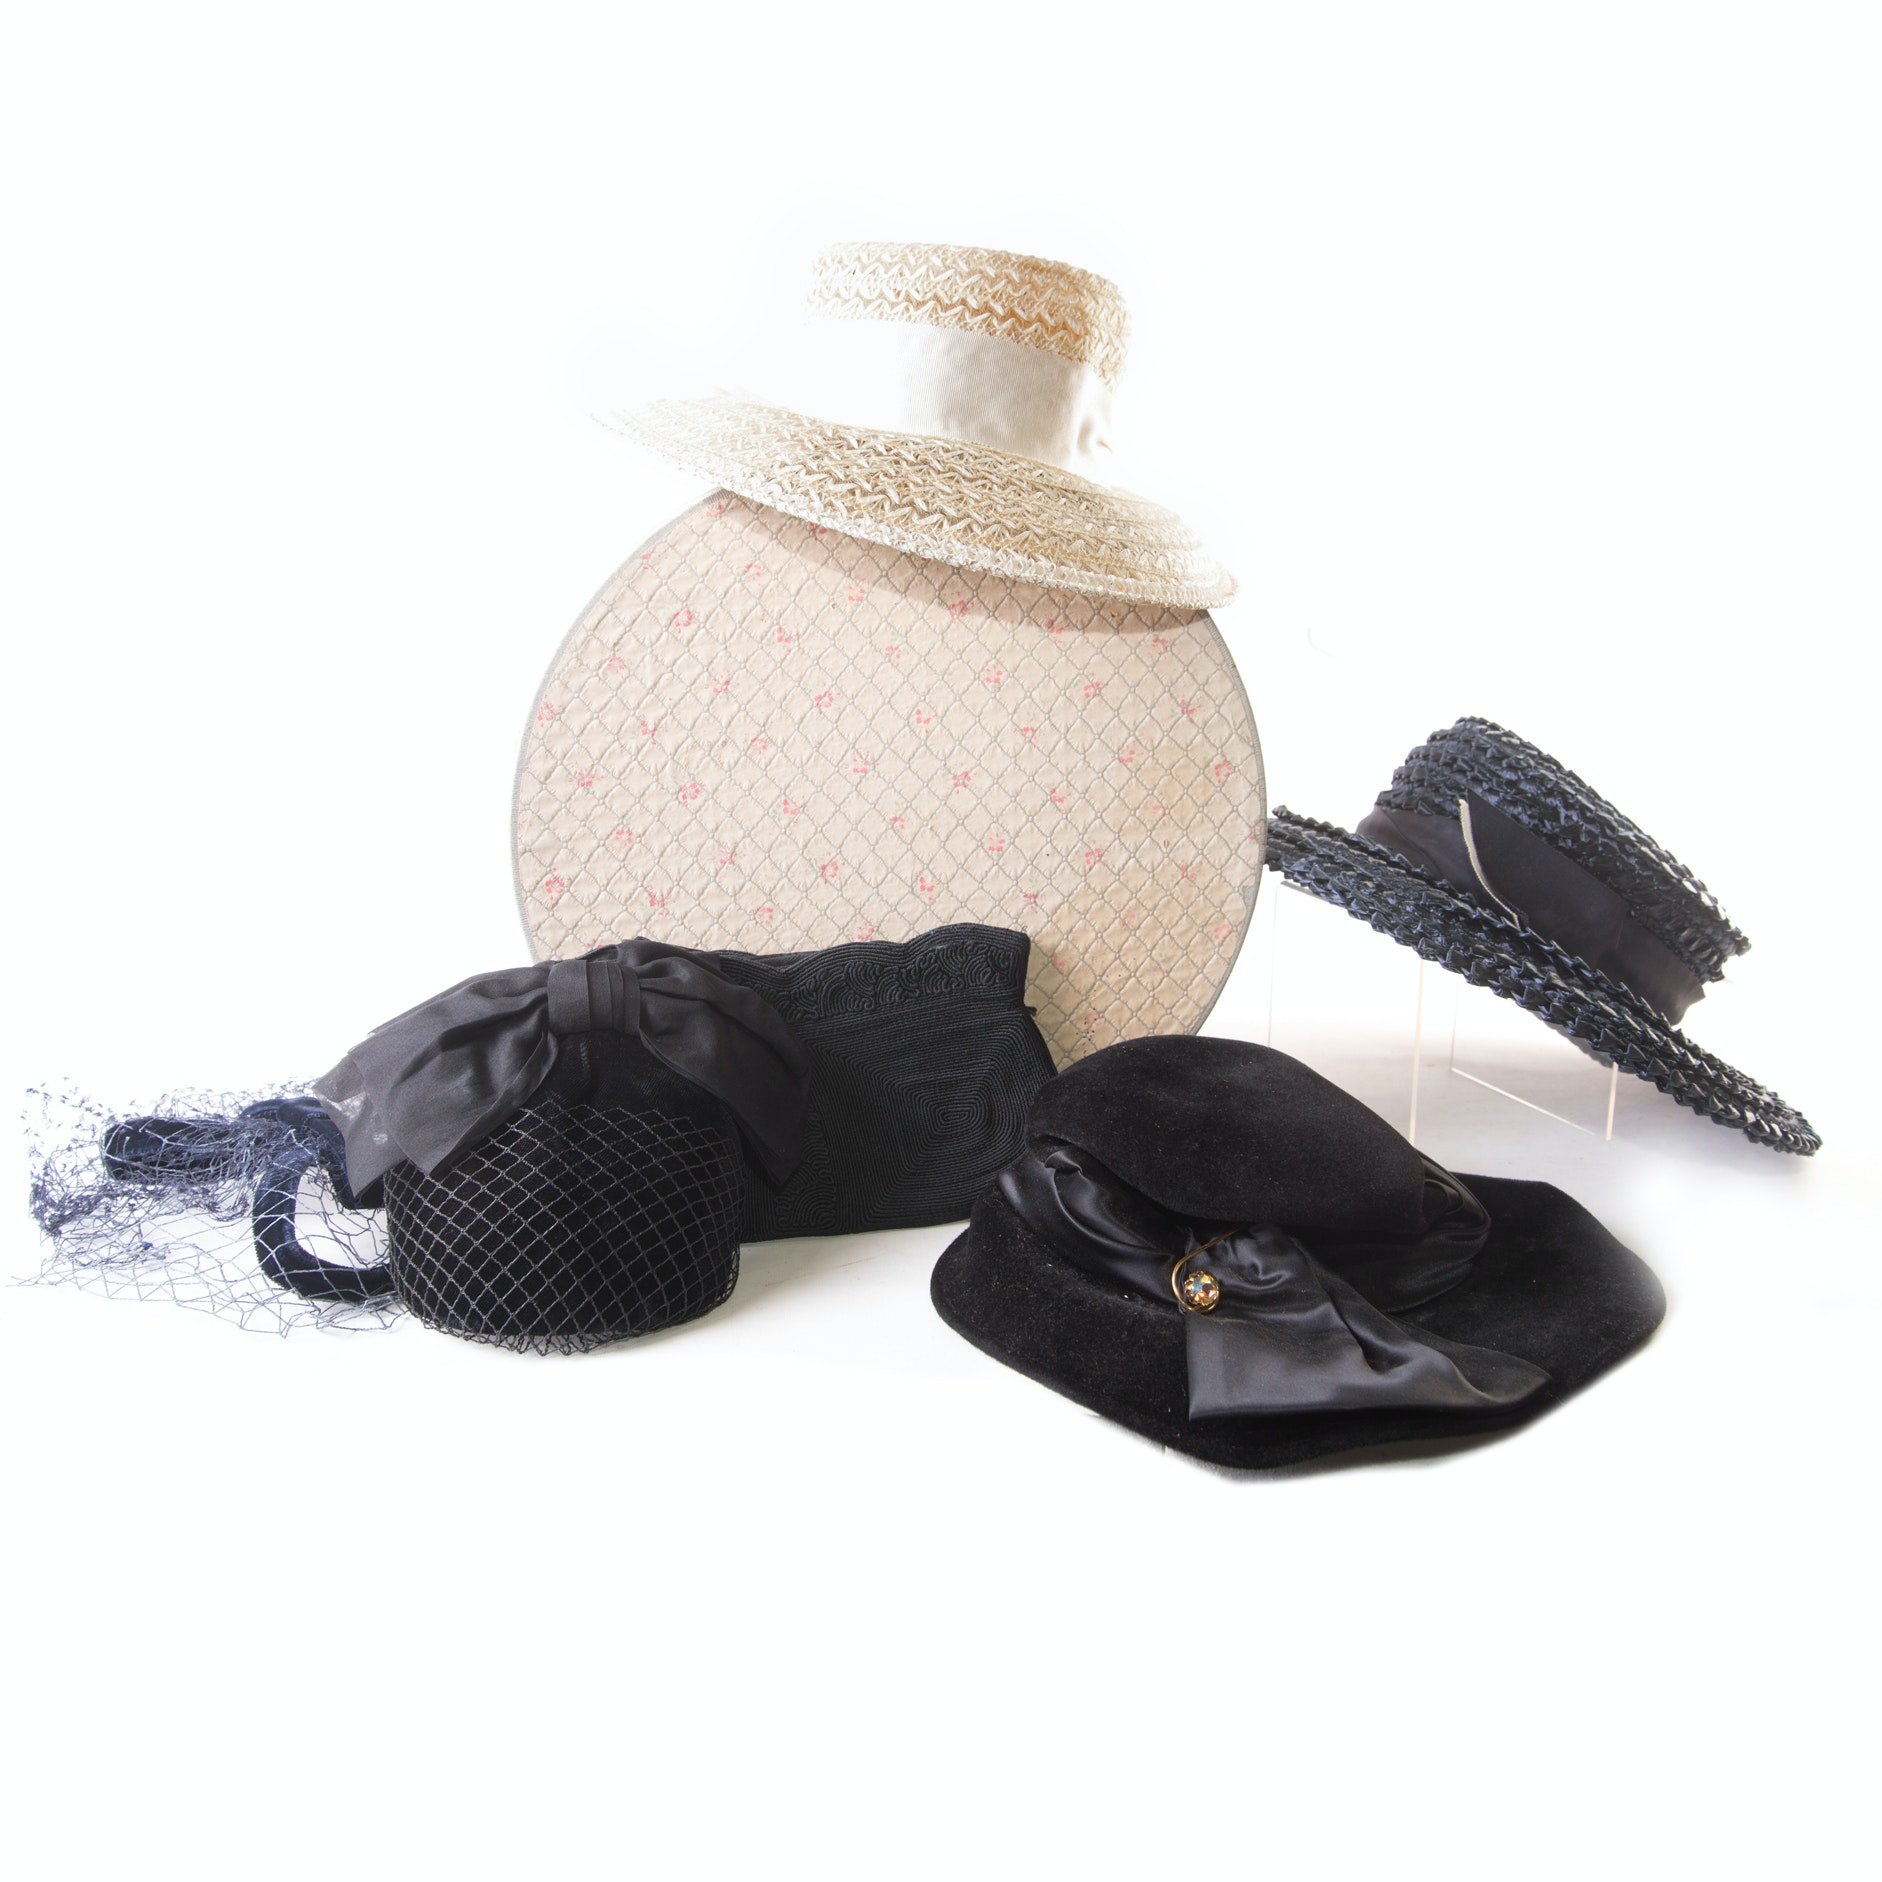 Vintage Hats, Clutch with Hat Box